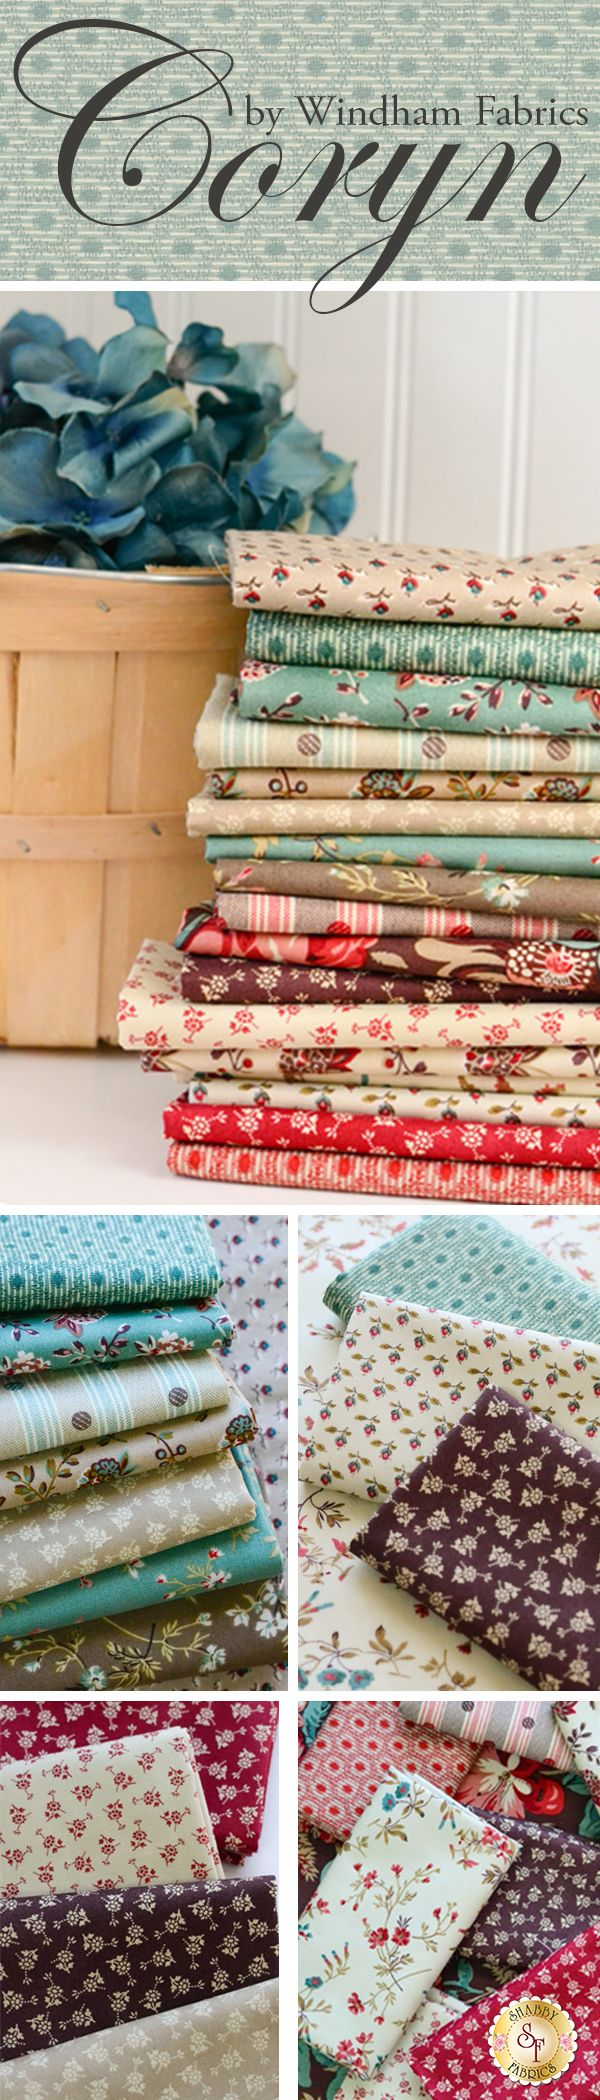 Coryn by Lisa DeBee Schiller for Windham Fabrics is a beautiful floral fabric collection available at Shabby Fabrics